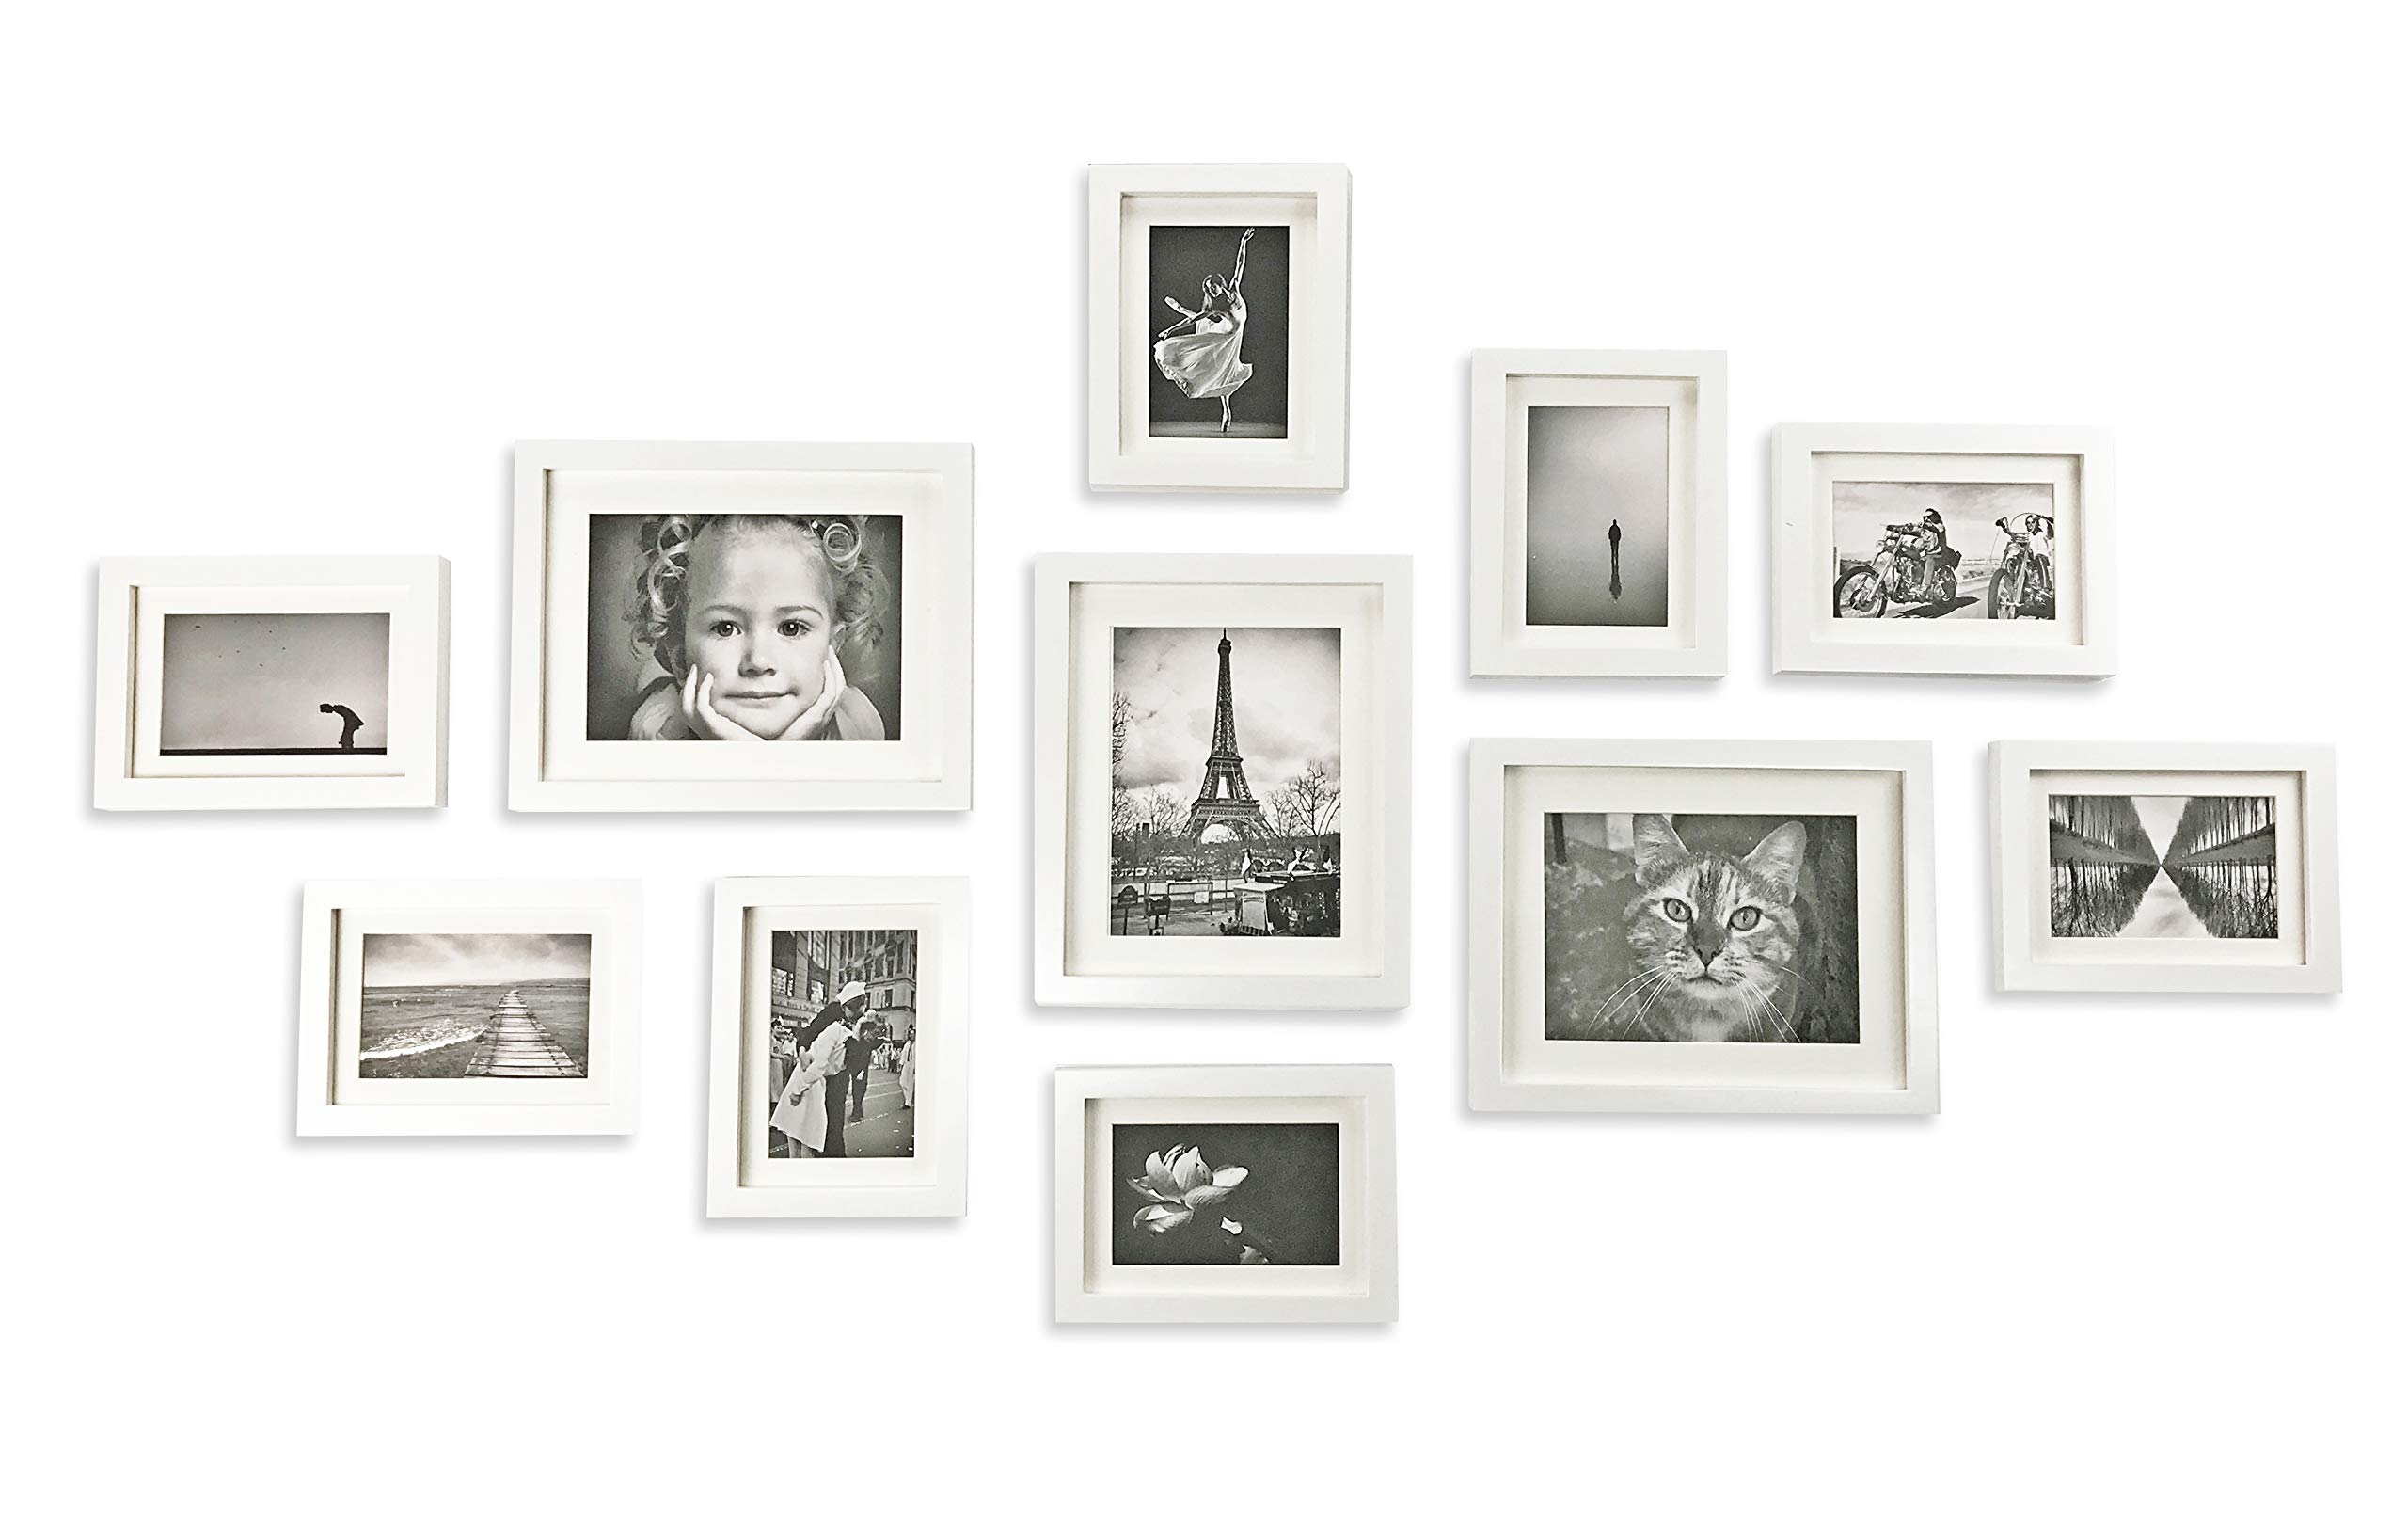 Ray & Chow White Gallery Wall Picture Frames Set Kit- 11 Frames- Solid Wood- Glass Window-Made to Display 8x10 5x7 Pictures Without Mat or 5x7 4x6 Pictures with Mat - Hanging Hardware Included - Your wall deserves 100% SOLID WOOD /Frame moulding thickness 20mm&depth 20mm Includes: 3pcs 8x10,Made to Display 8x10 with Mat or 5x7 Pictures with Mat; 8pcs 5x7,Made to Display 5x7 with Mat or 4x6 Pictures with Mat Frames come with lead-free GLASS window and white color PICTURE MAT for that PREMIUM LOOK - picture-frames, bedroom-decor, bedroom - 71G3IXaGXdL -